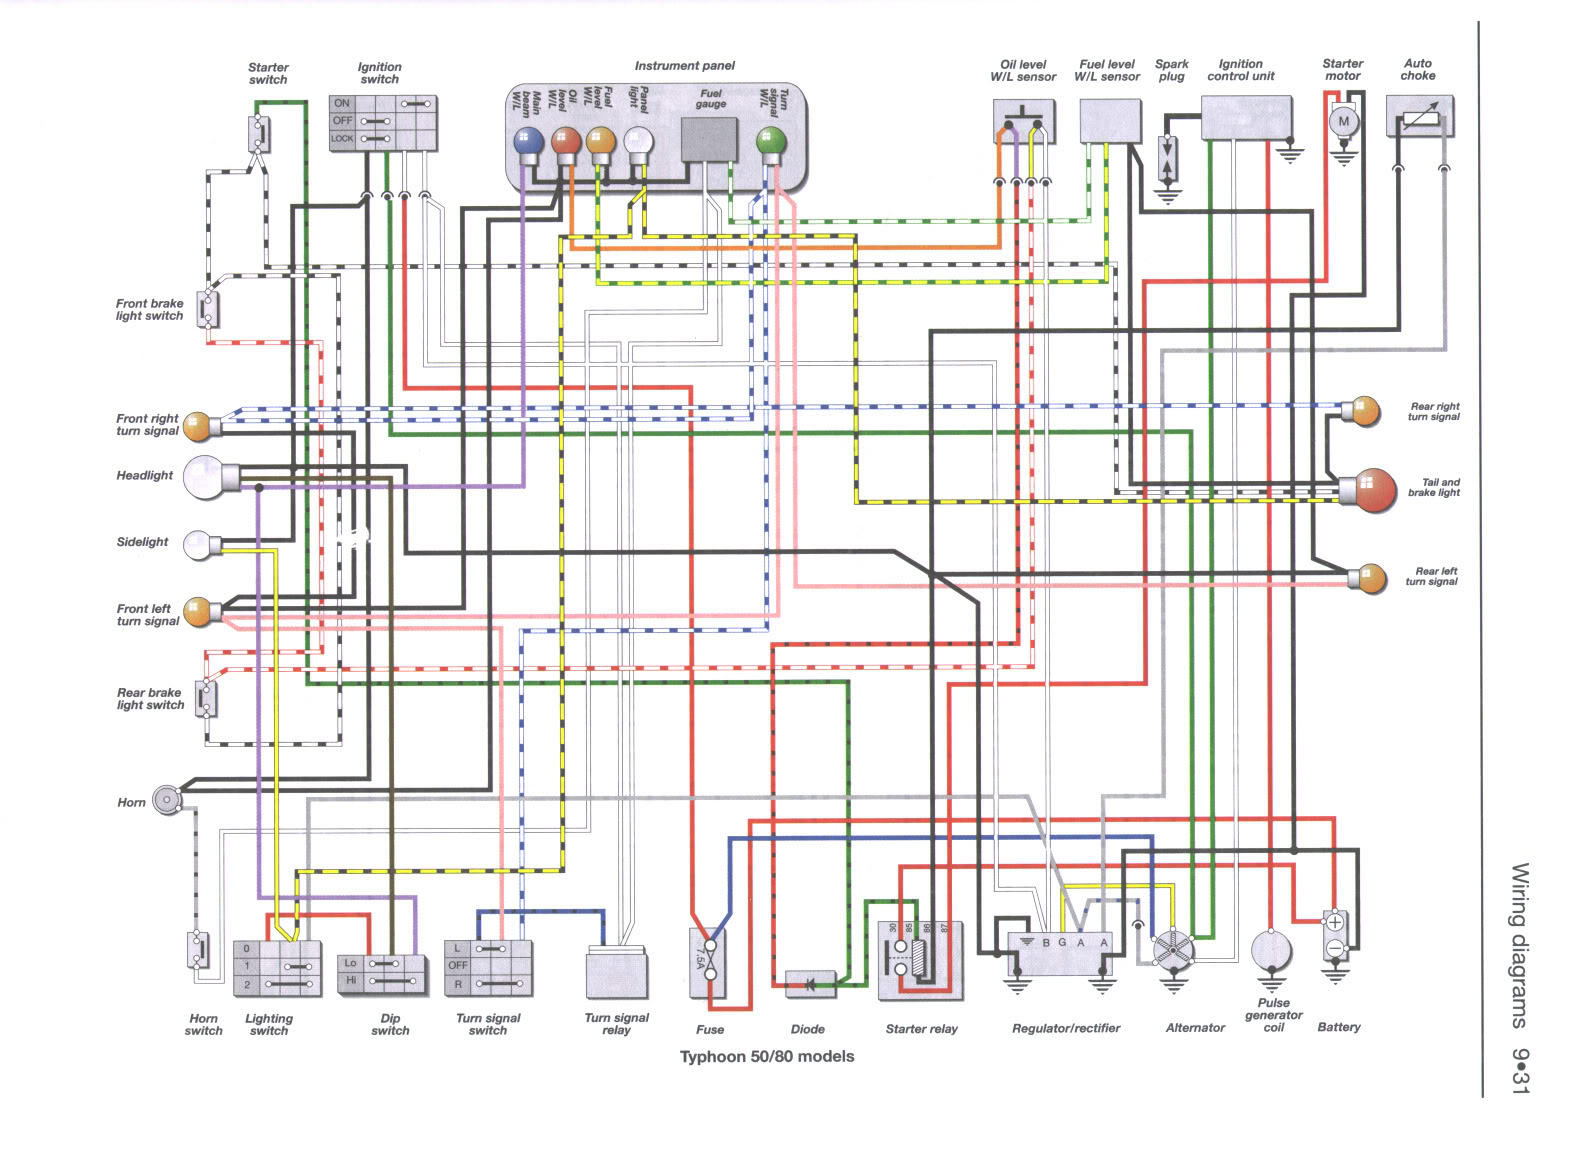 Piaggio Typhoon 50 wiring diagram piaggio typhoon 50 fuses? scooter shack scooter forum  at mifinder.co